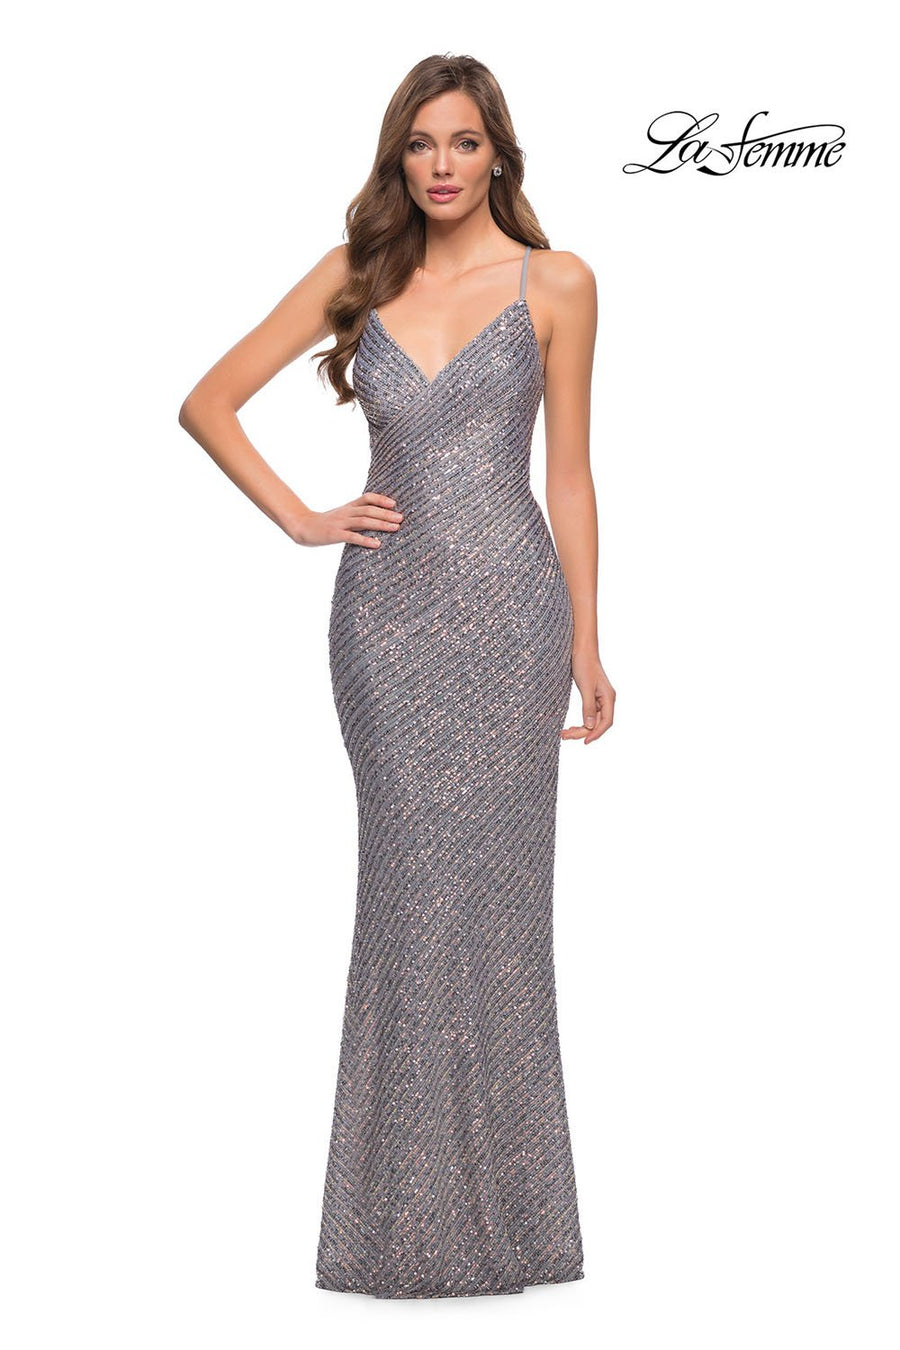 La Femme 29895 prom dress images.  La Femme 29895 is available in these colors: Silver.